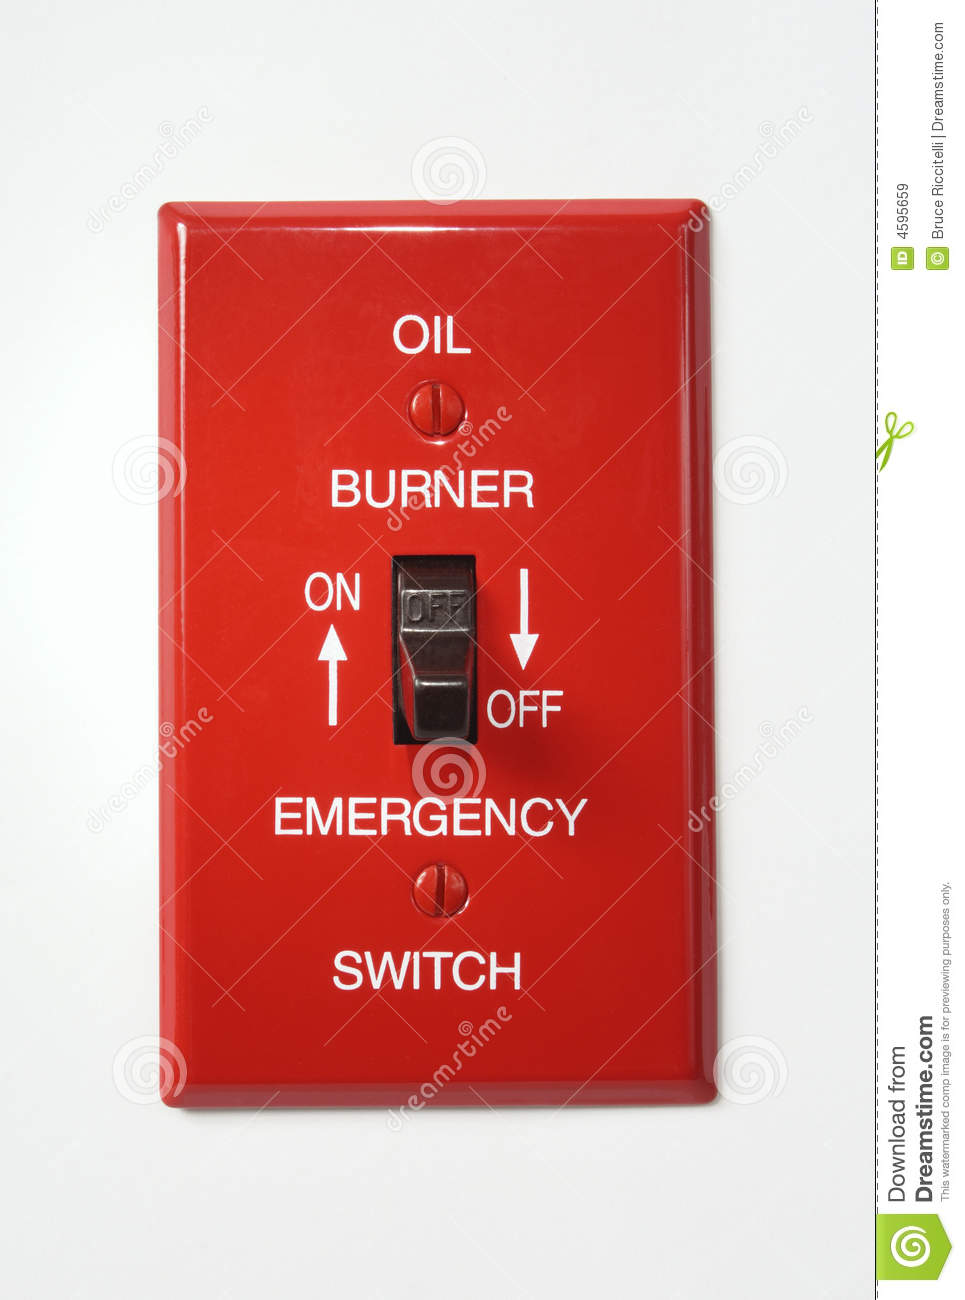 Oil Burner Emergency Switch Off Stock Image Image Of